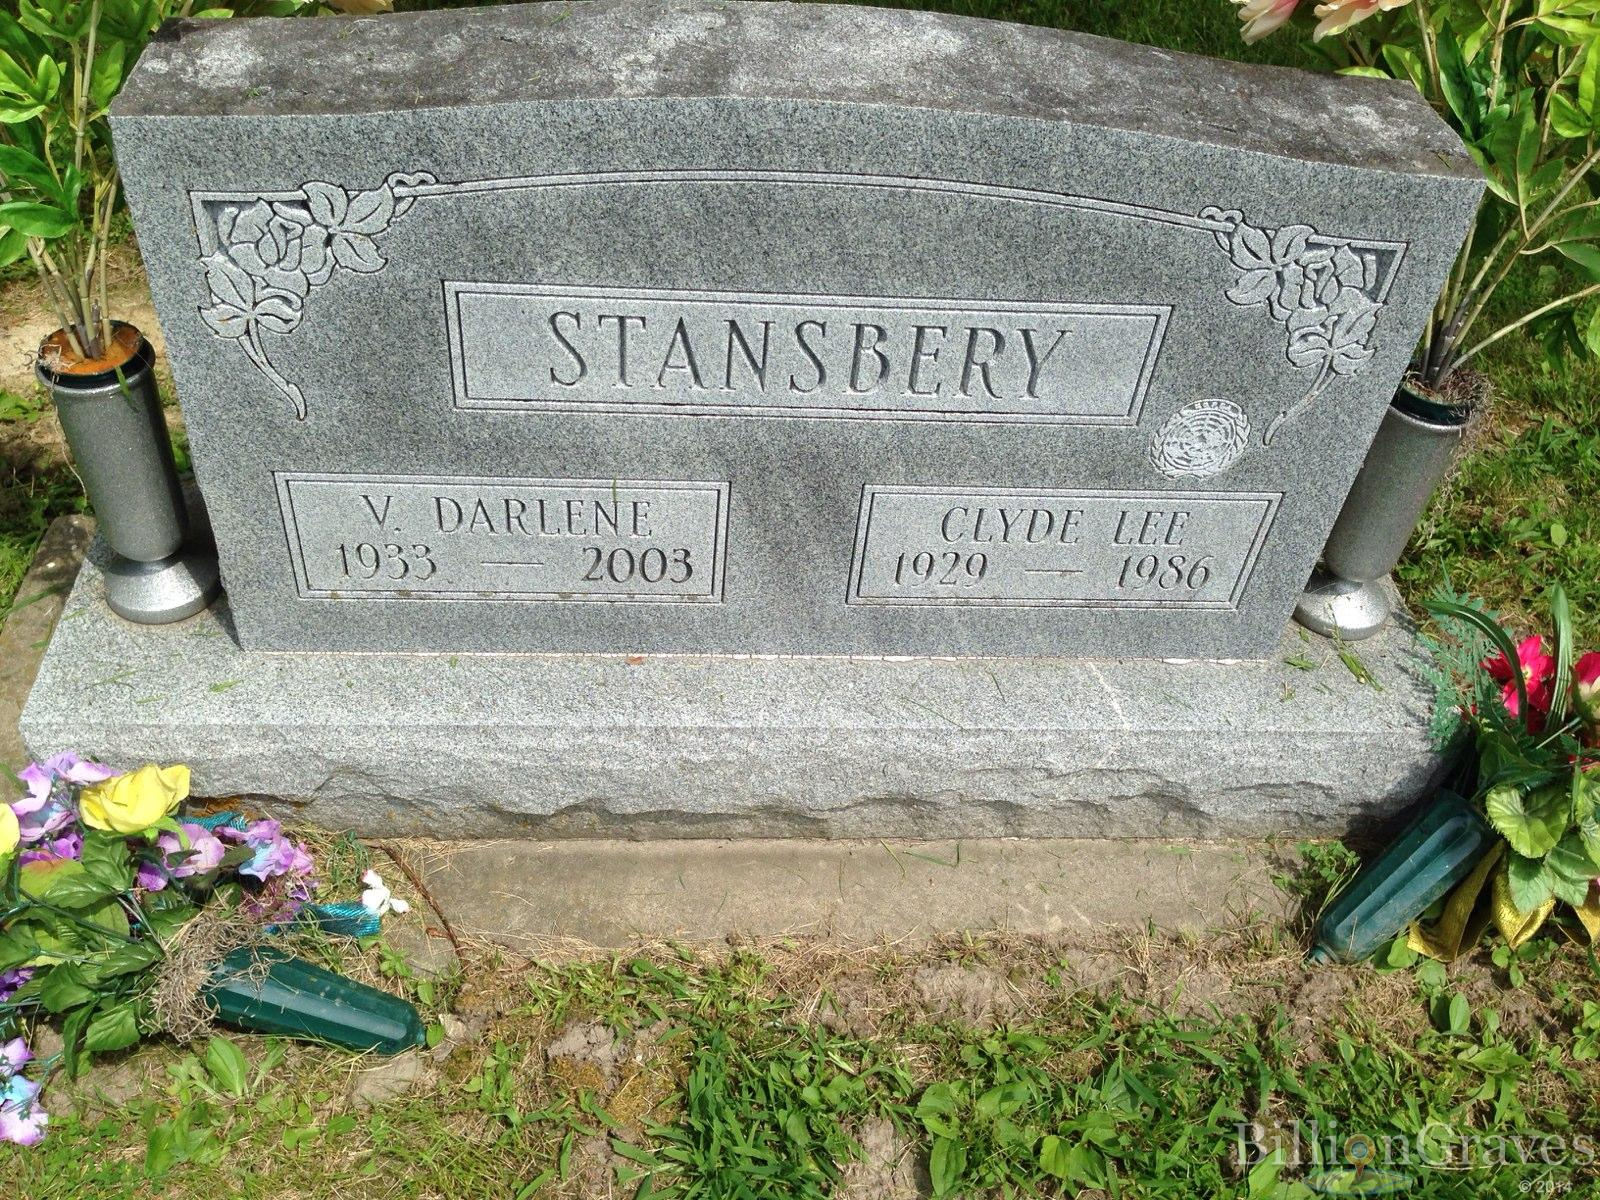 Clyde Lee Stansbery 1929 1986 Grave Site